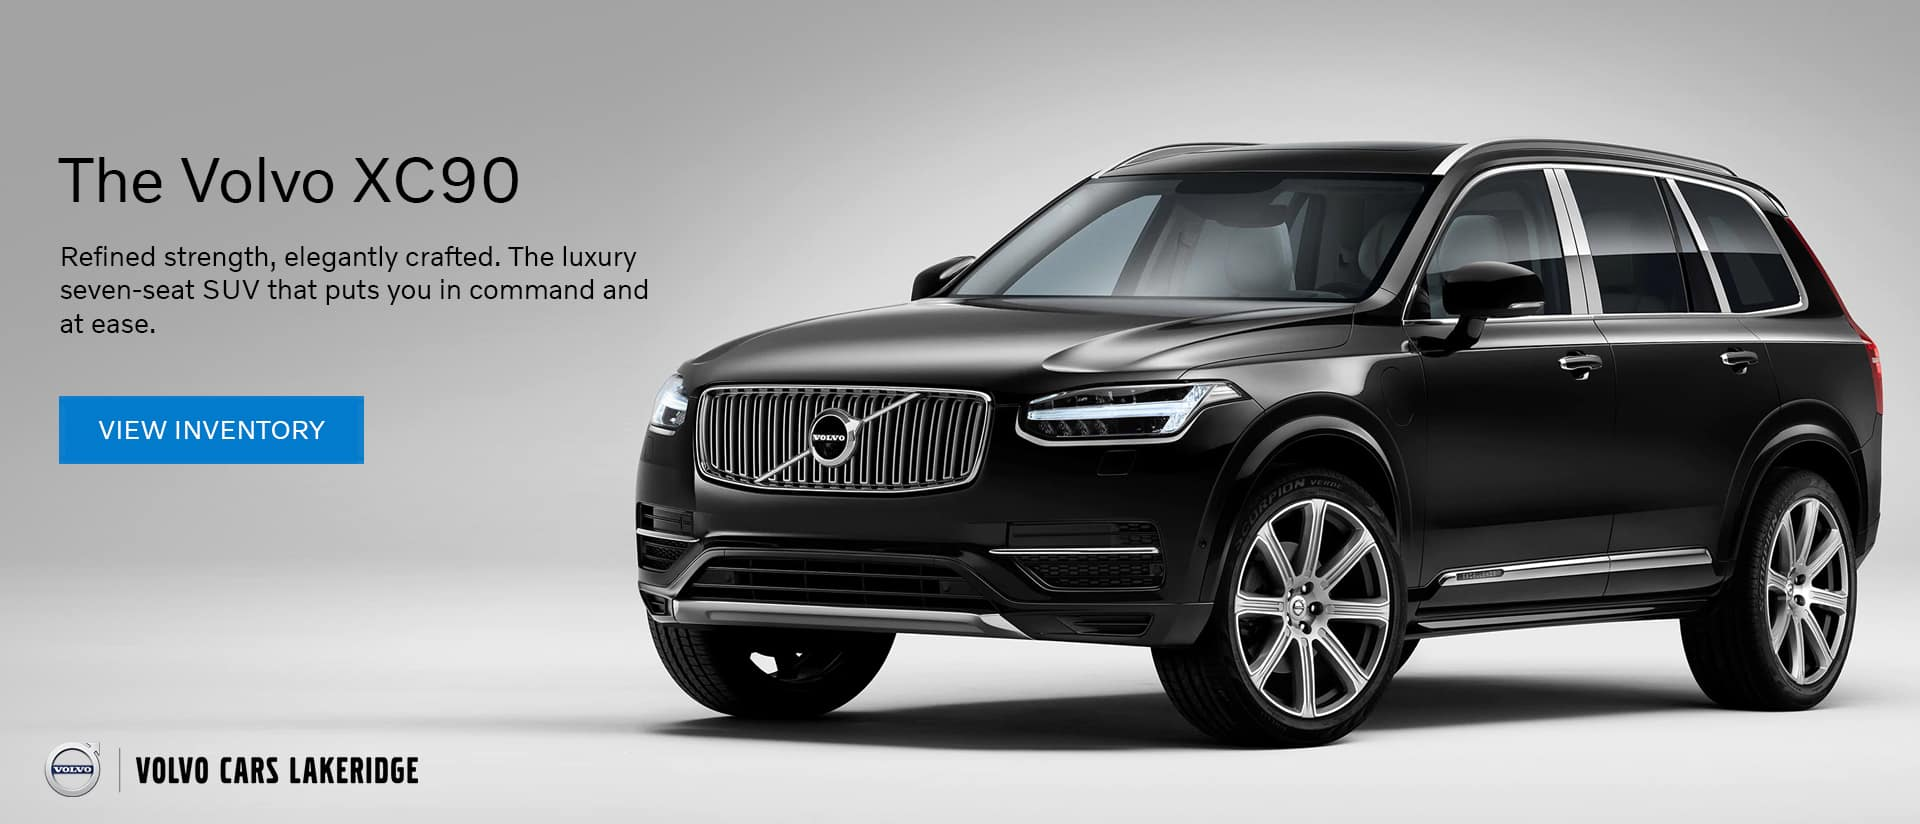 volvo xc90 volvo cars lakeridge